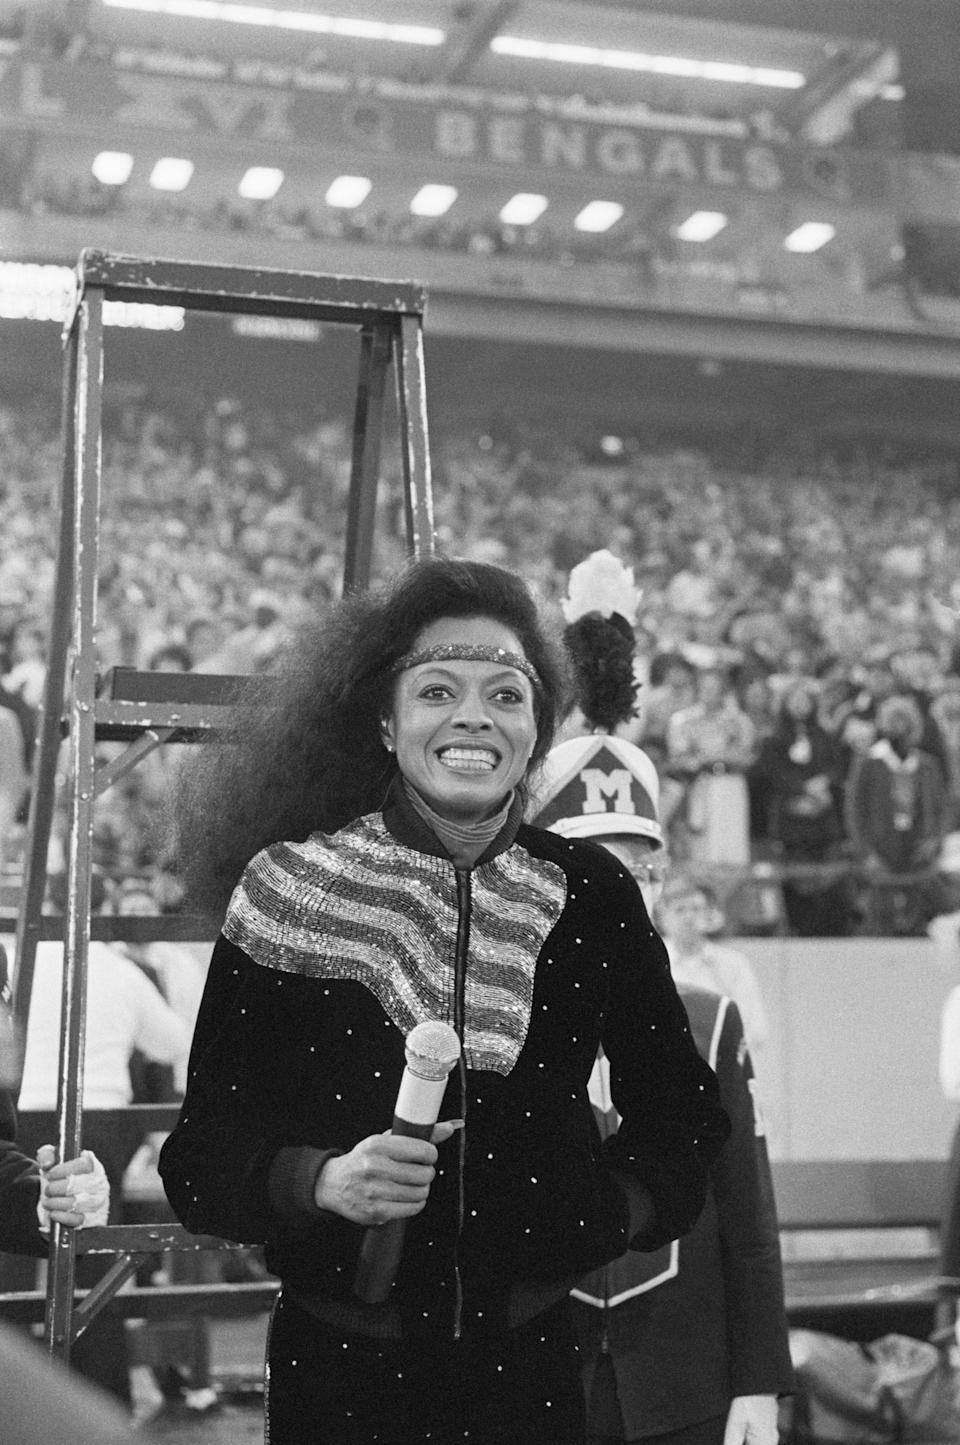 Diana Ross sings the National Anthem at Super Bowl XVI in Detroit's Silverdome Stadium in 1982.